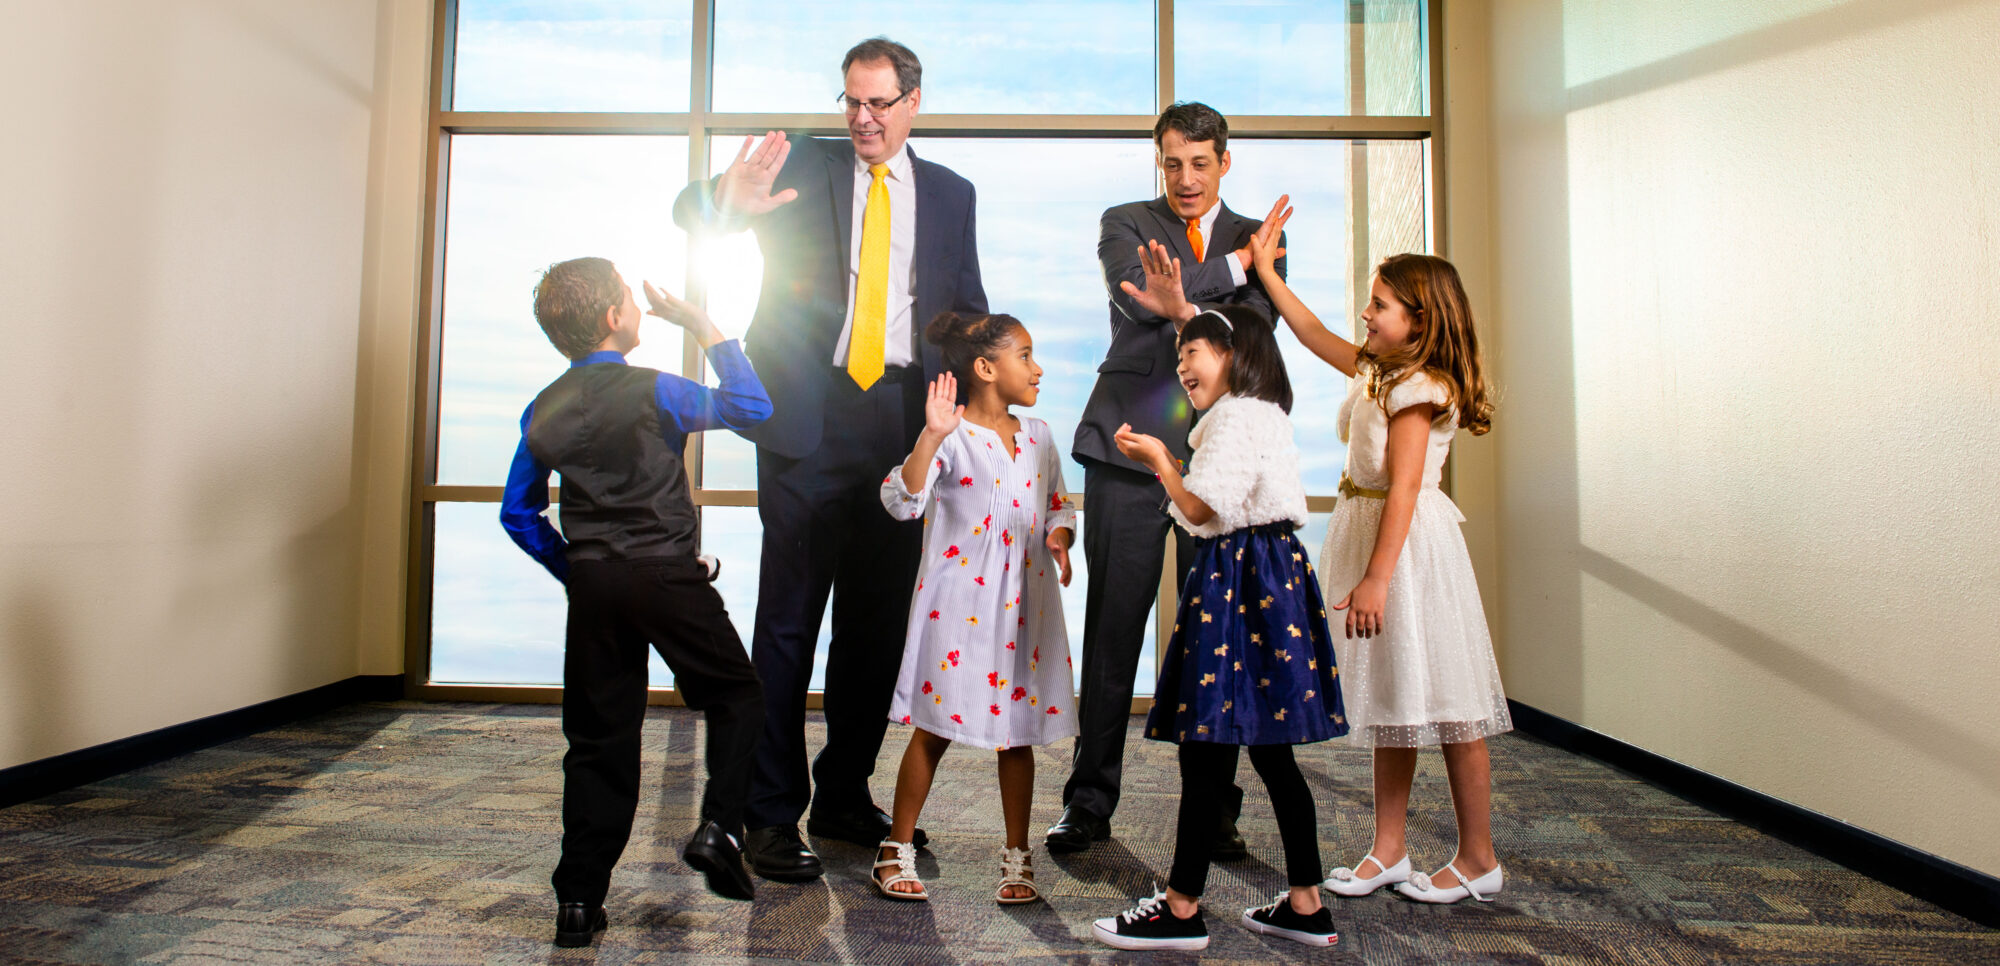 Two men giving four kids high fives.